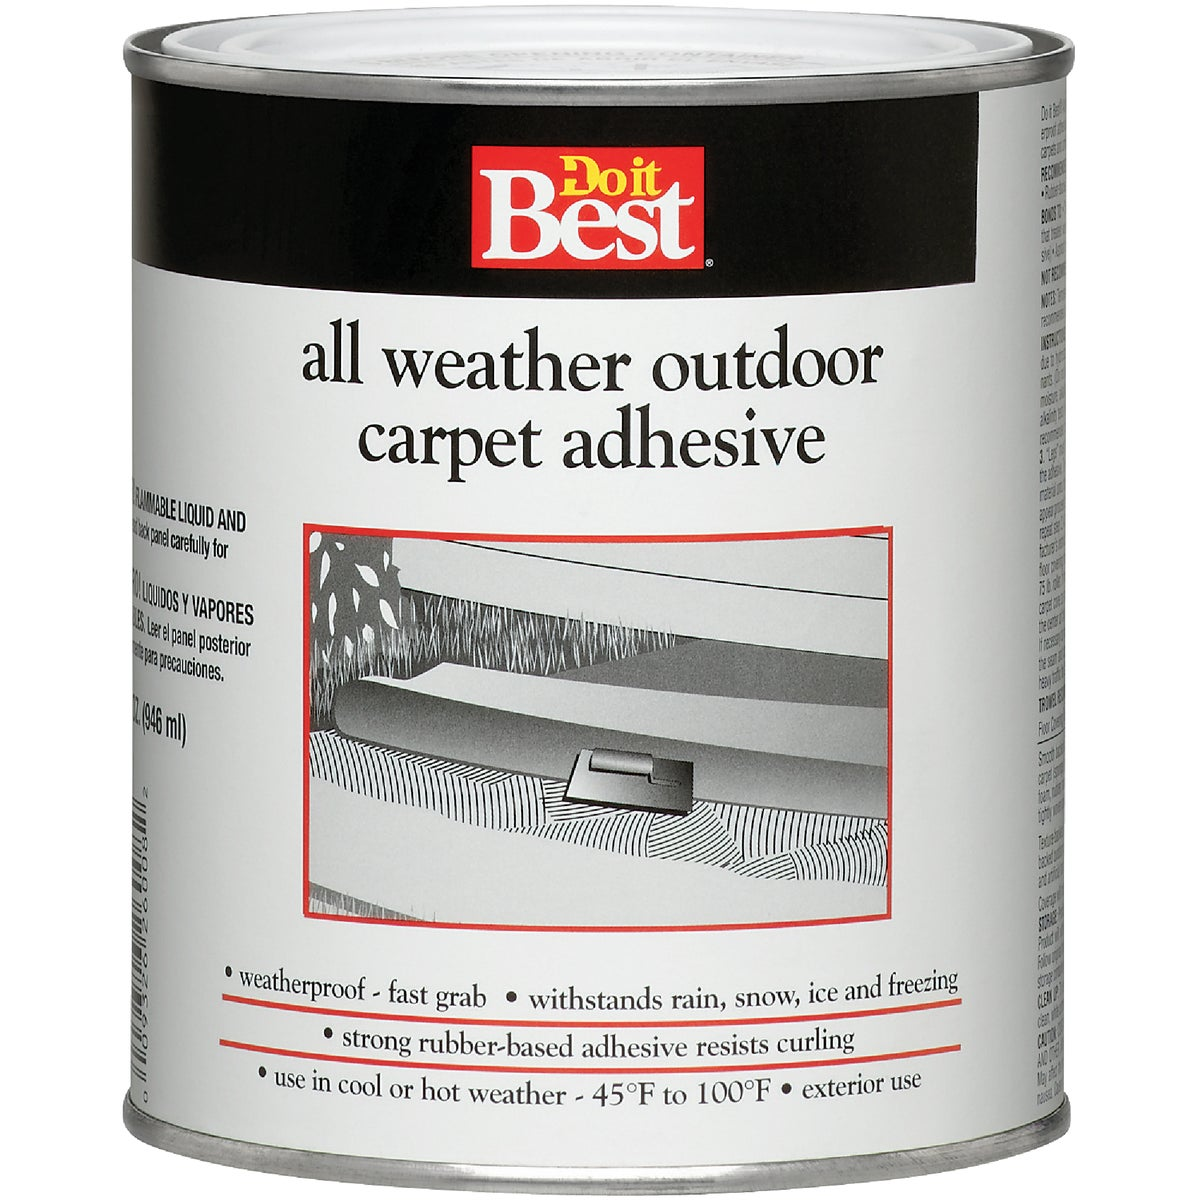 QT DI OD CARPET ADHESIVE - 26008 by Dap Inc